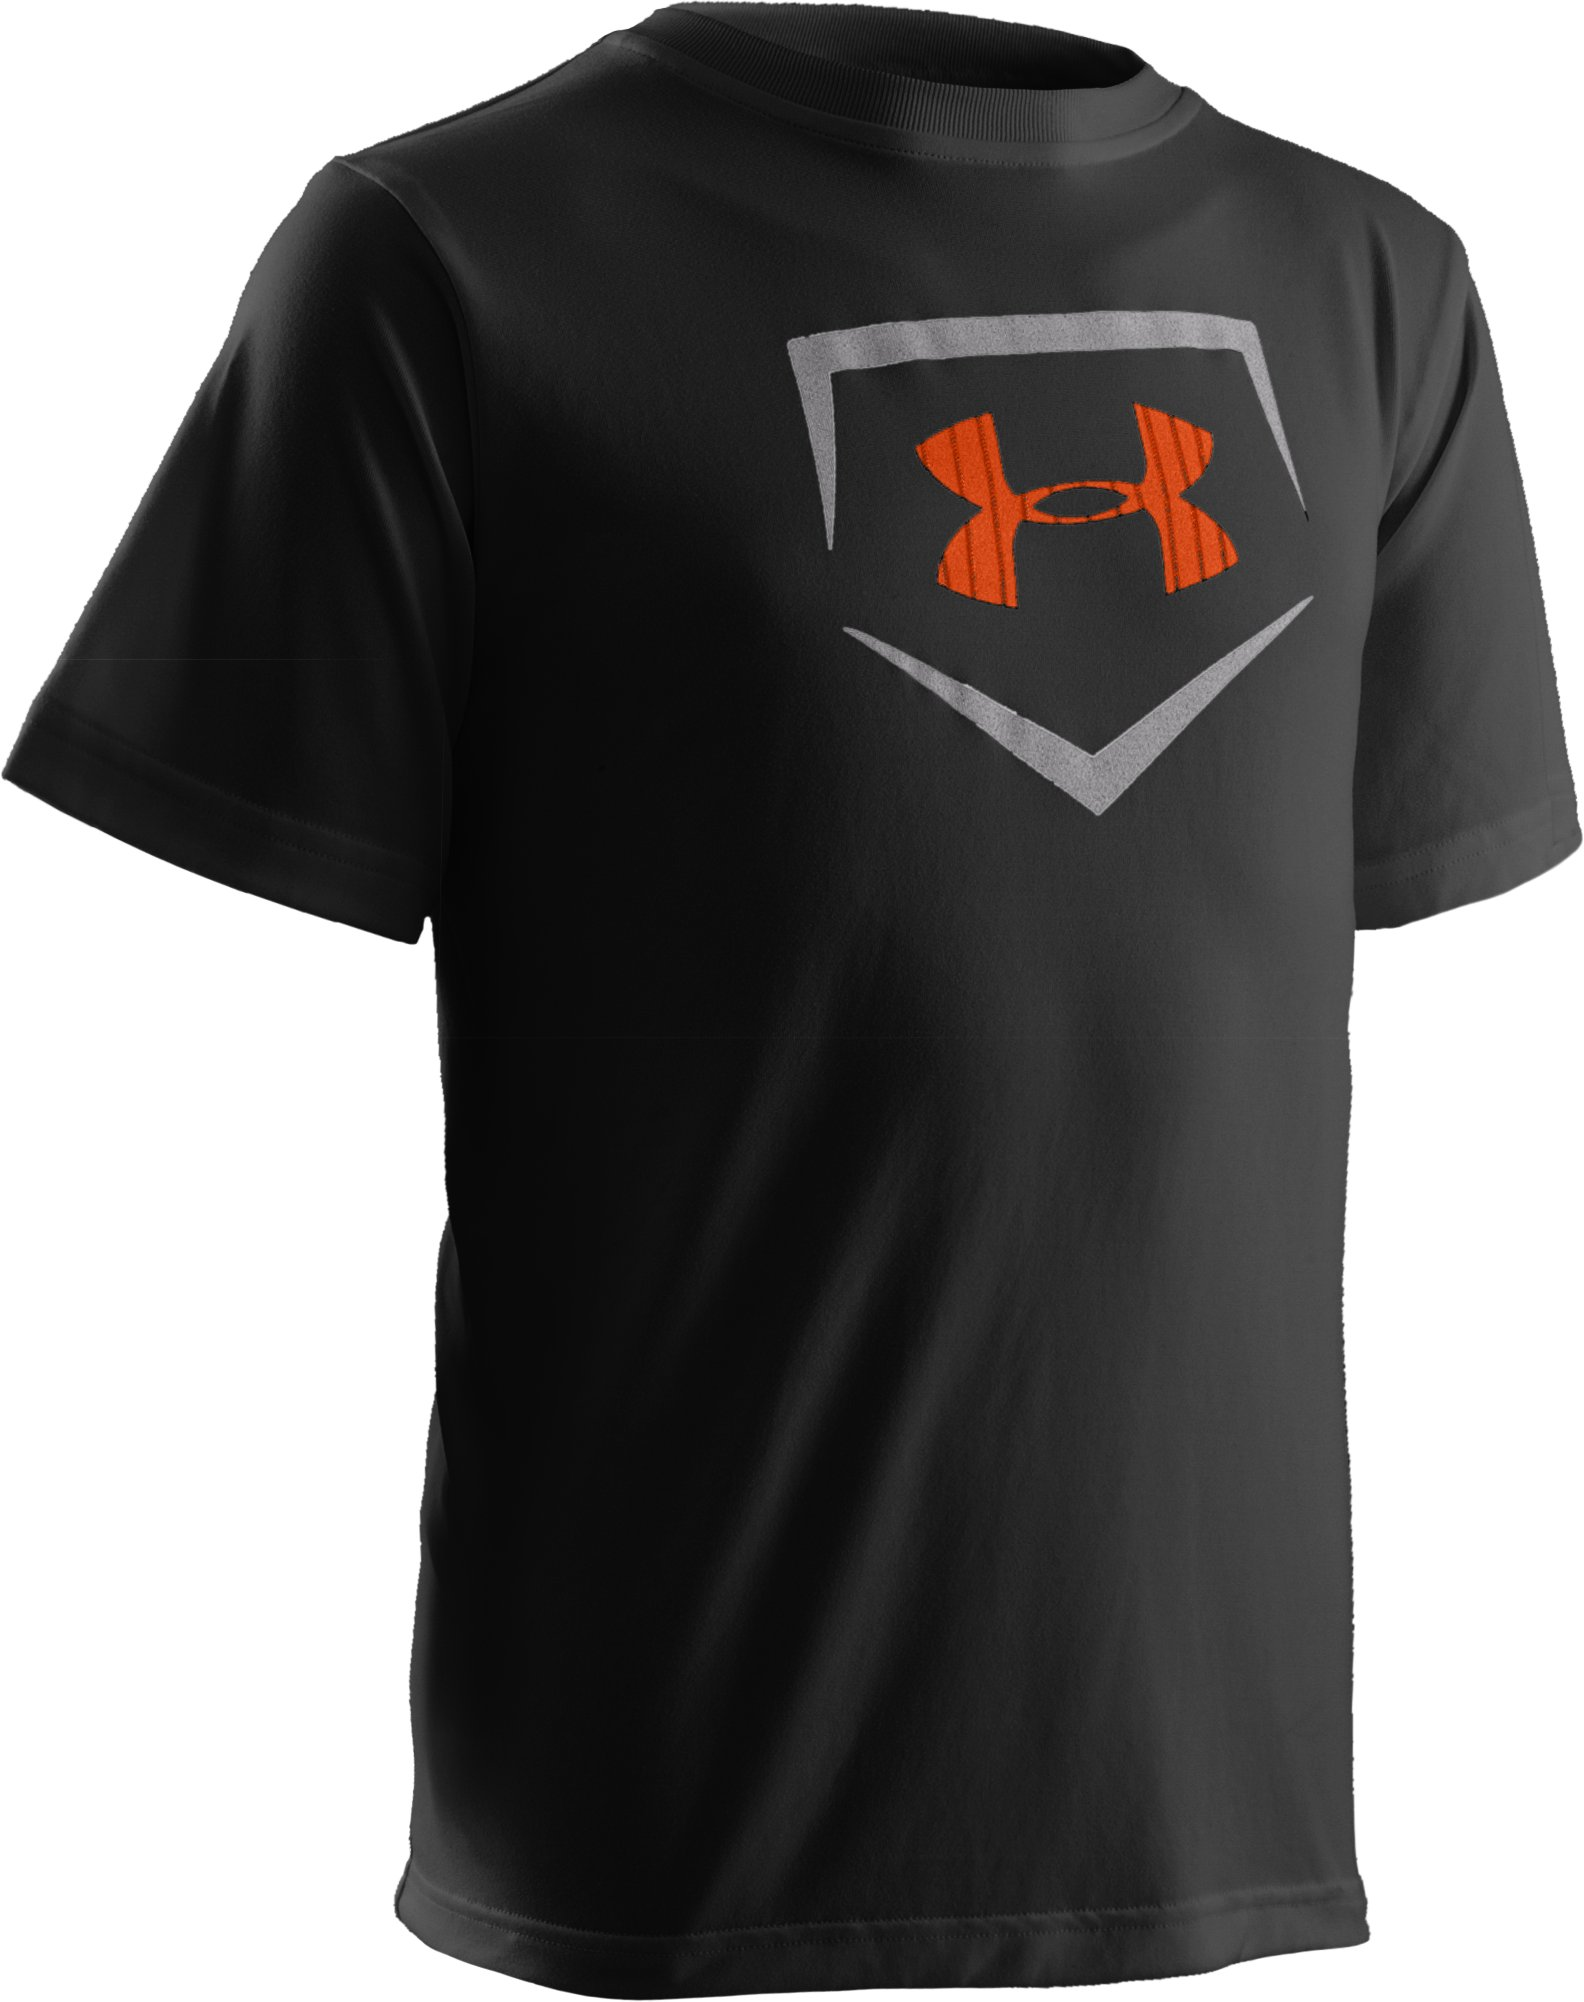 Boys' UA CTG Short Sleeve Graphic T-Shirt, Black